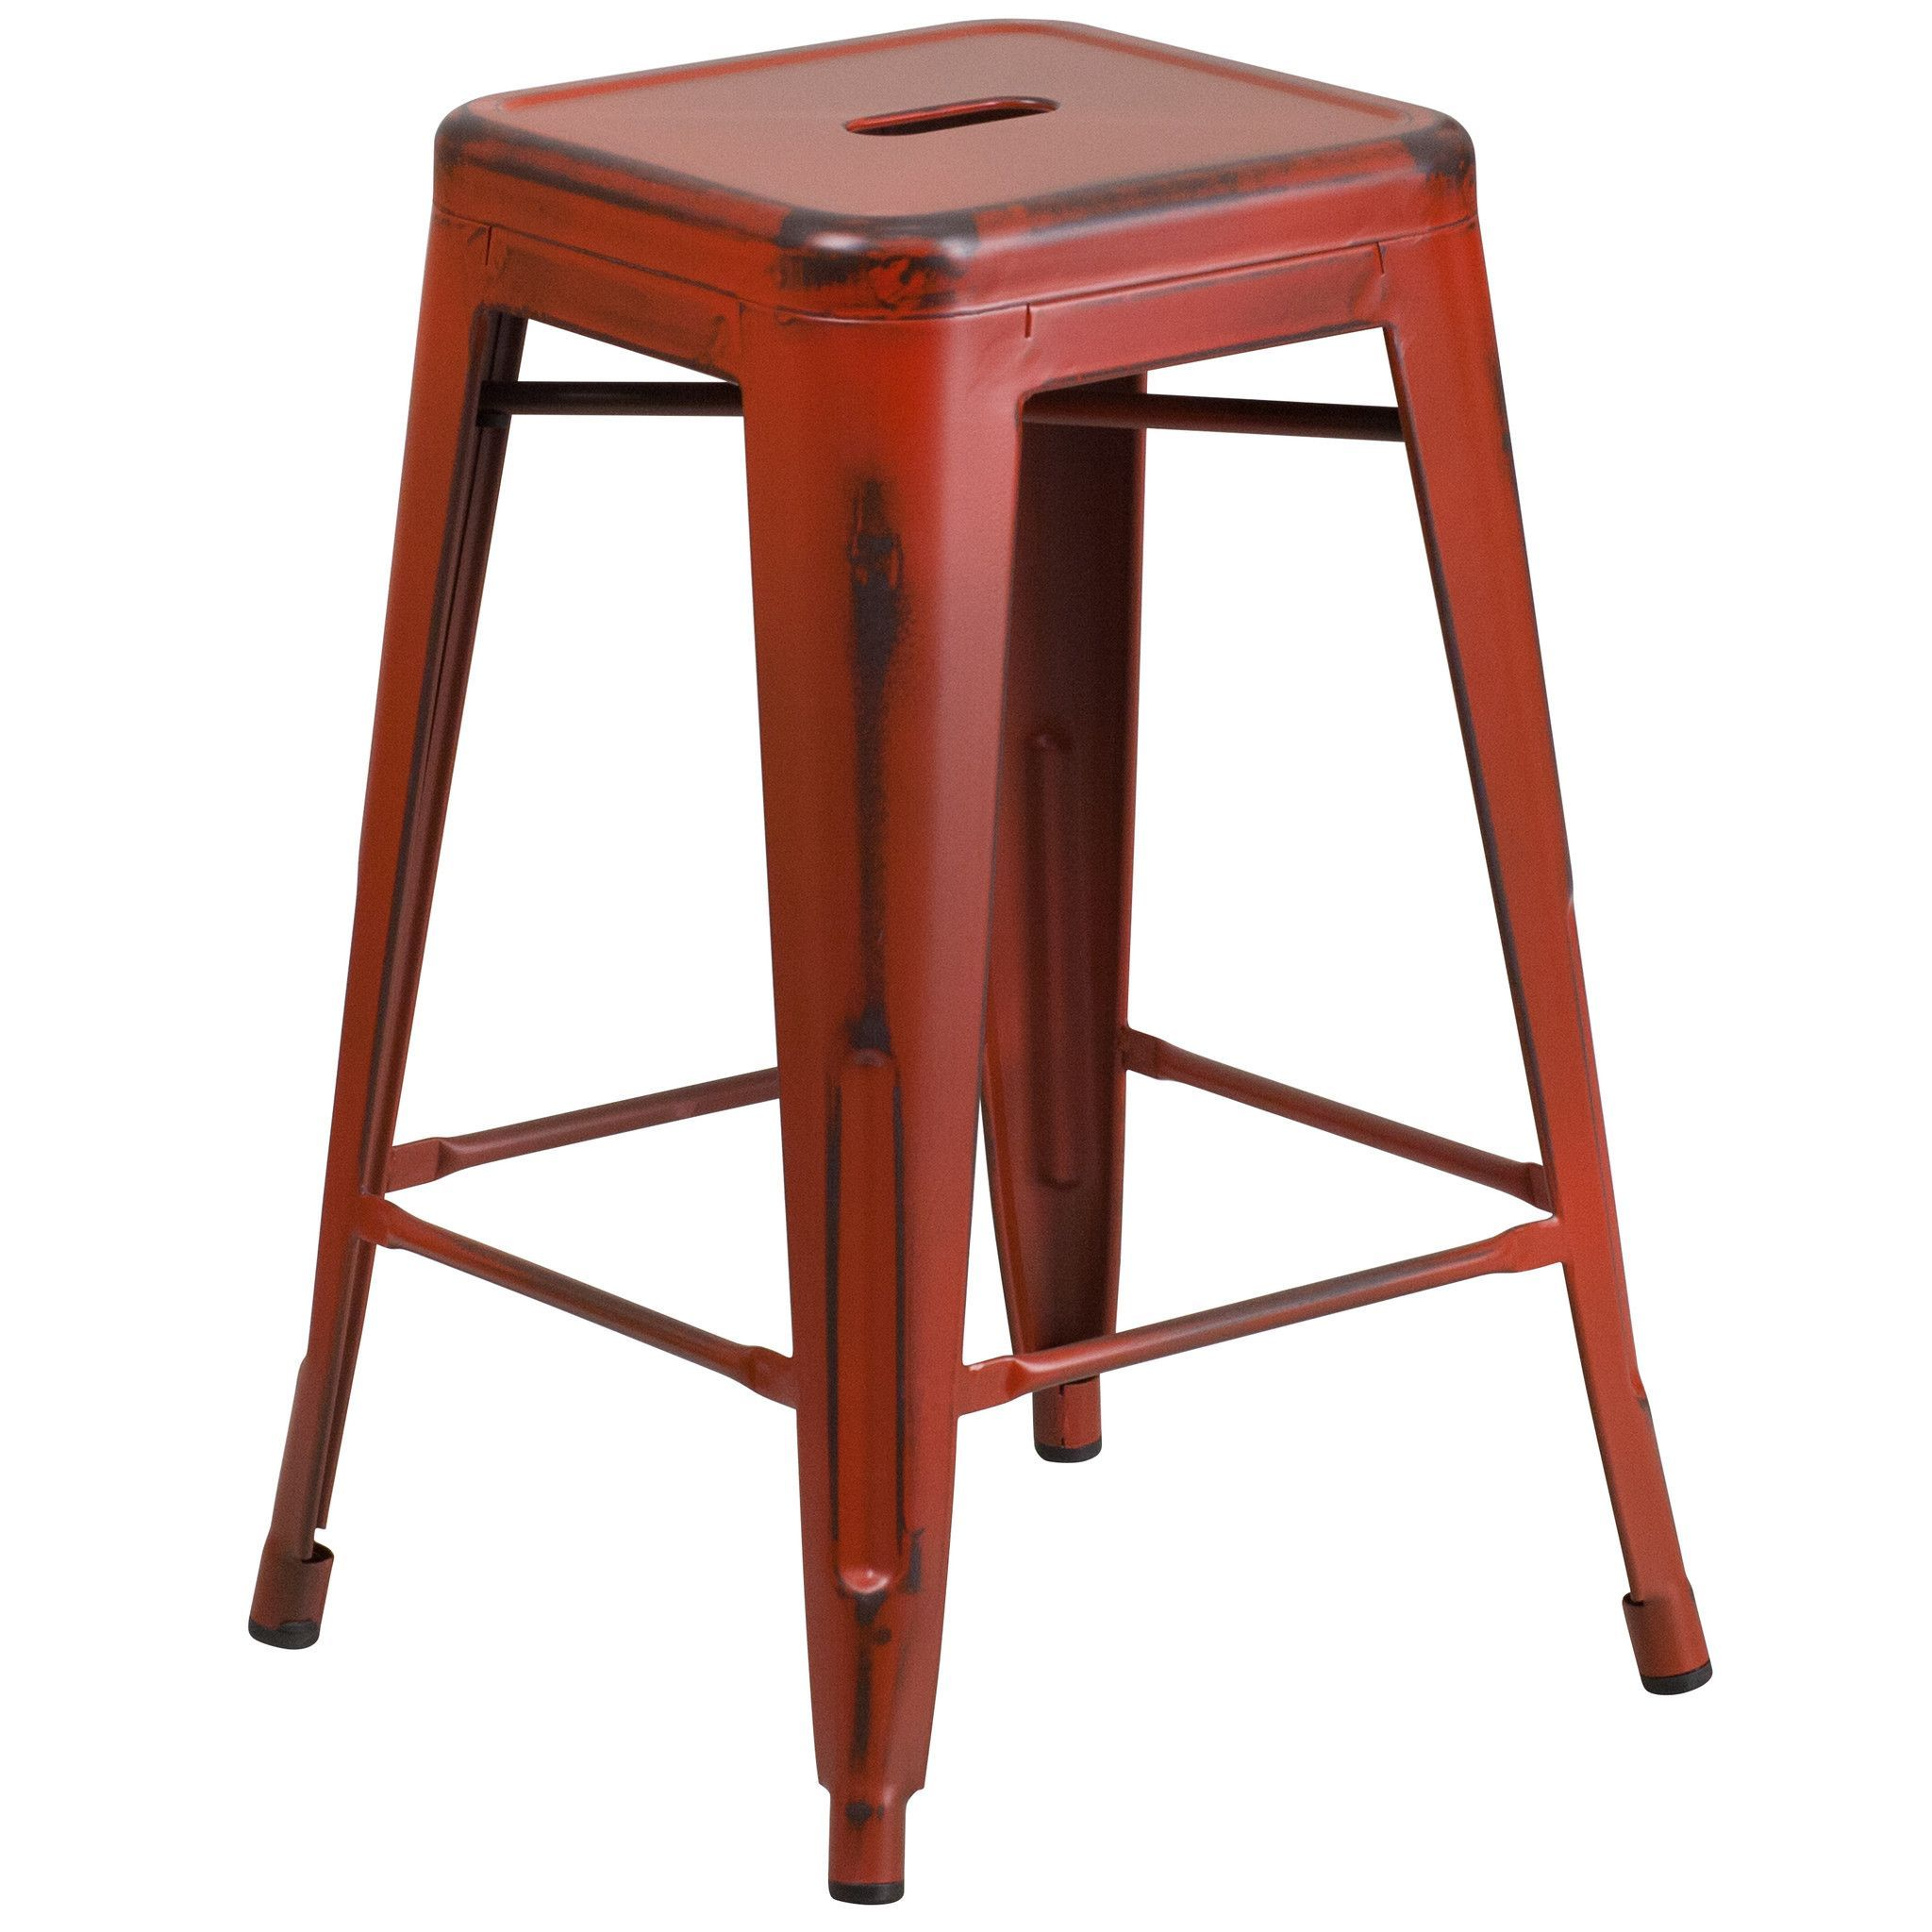 Flash Furniture Distressed Red Metal Stool Et Bt3503 24 Rd Gg Tabouret En Metal Tabouret De Bar Tabouret Industriel